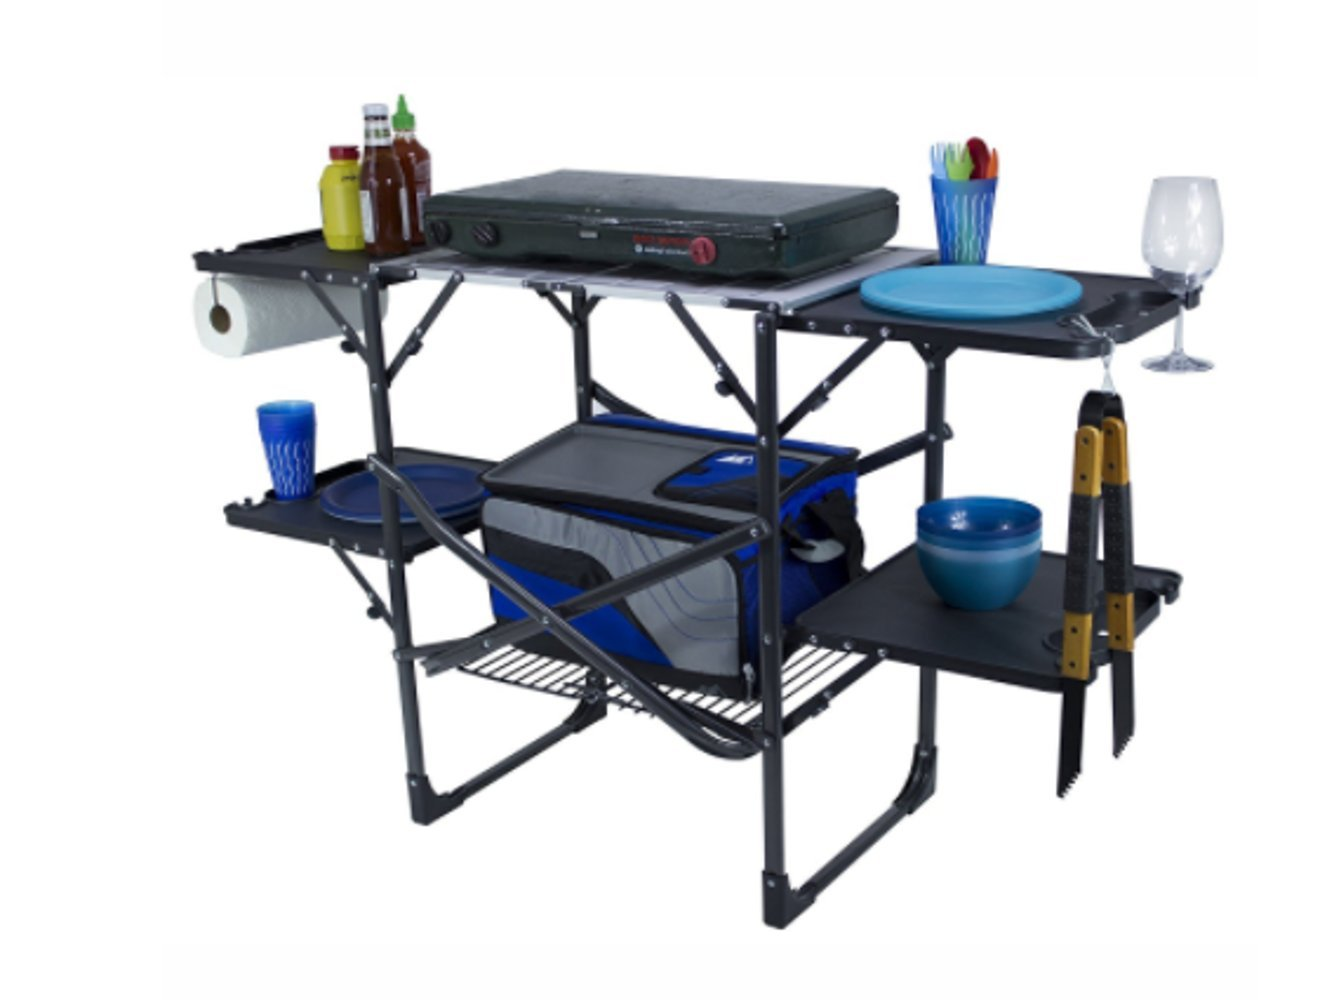 Portable Prep Station, Good Quality Material, Steel Surface, Lightweight, Easy Transportation, Stylish Design, Easy Assembly, Ideal For Outdoor Spaces, Sturdy And Durable Construction & E-Book